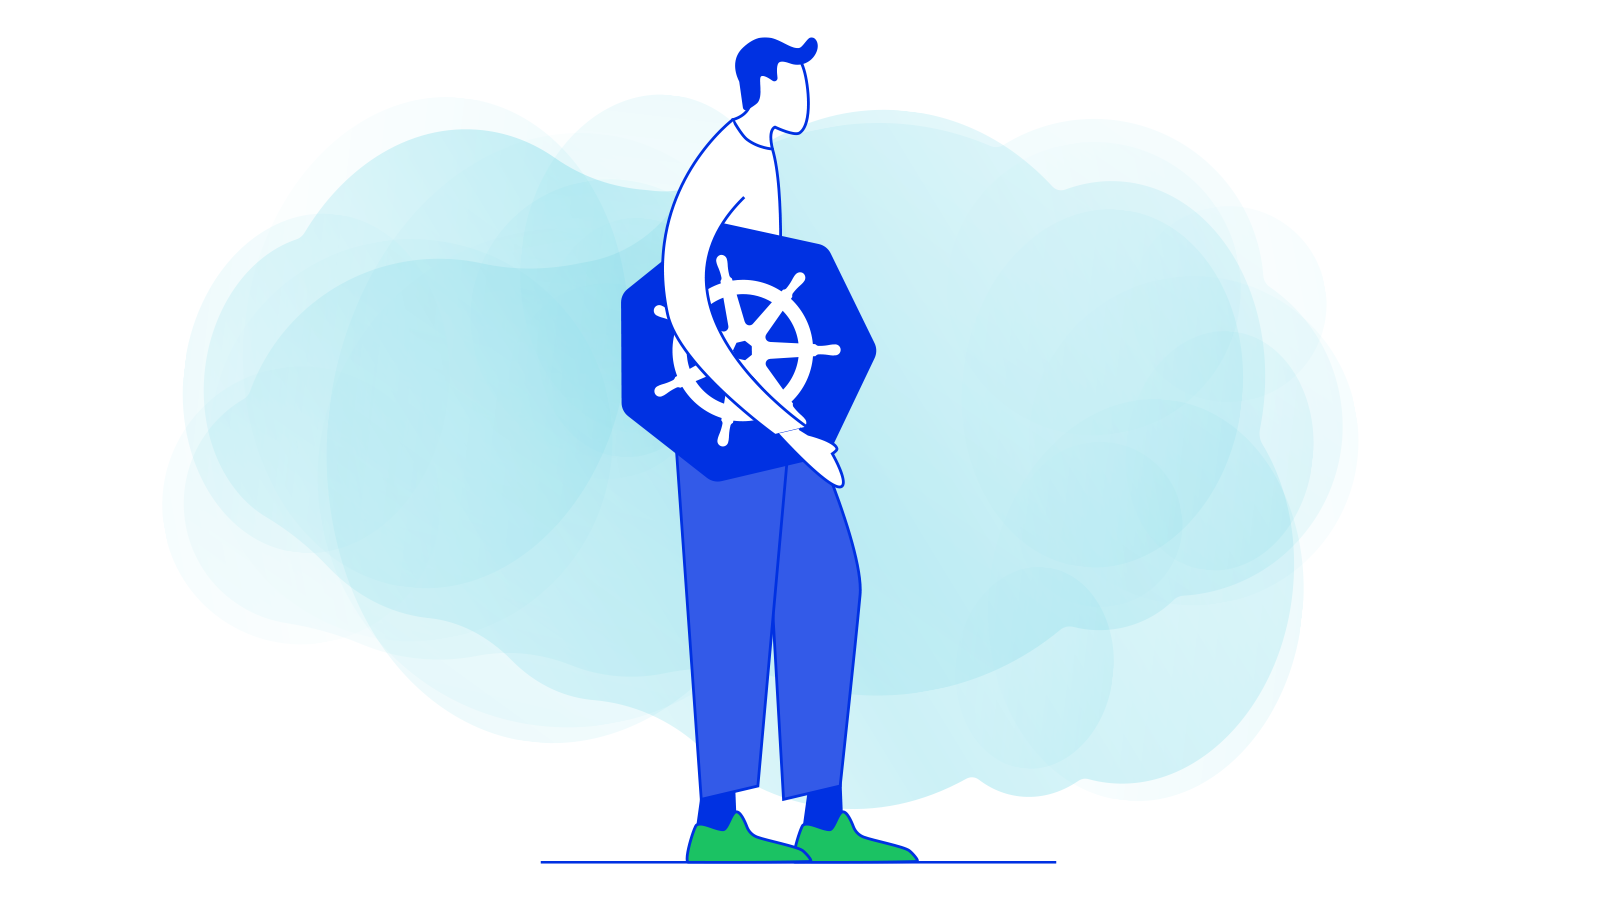 Exposing Kubernetes Workloads to the World Without Losing